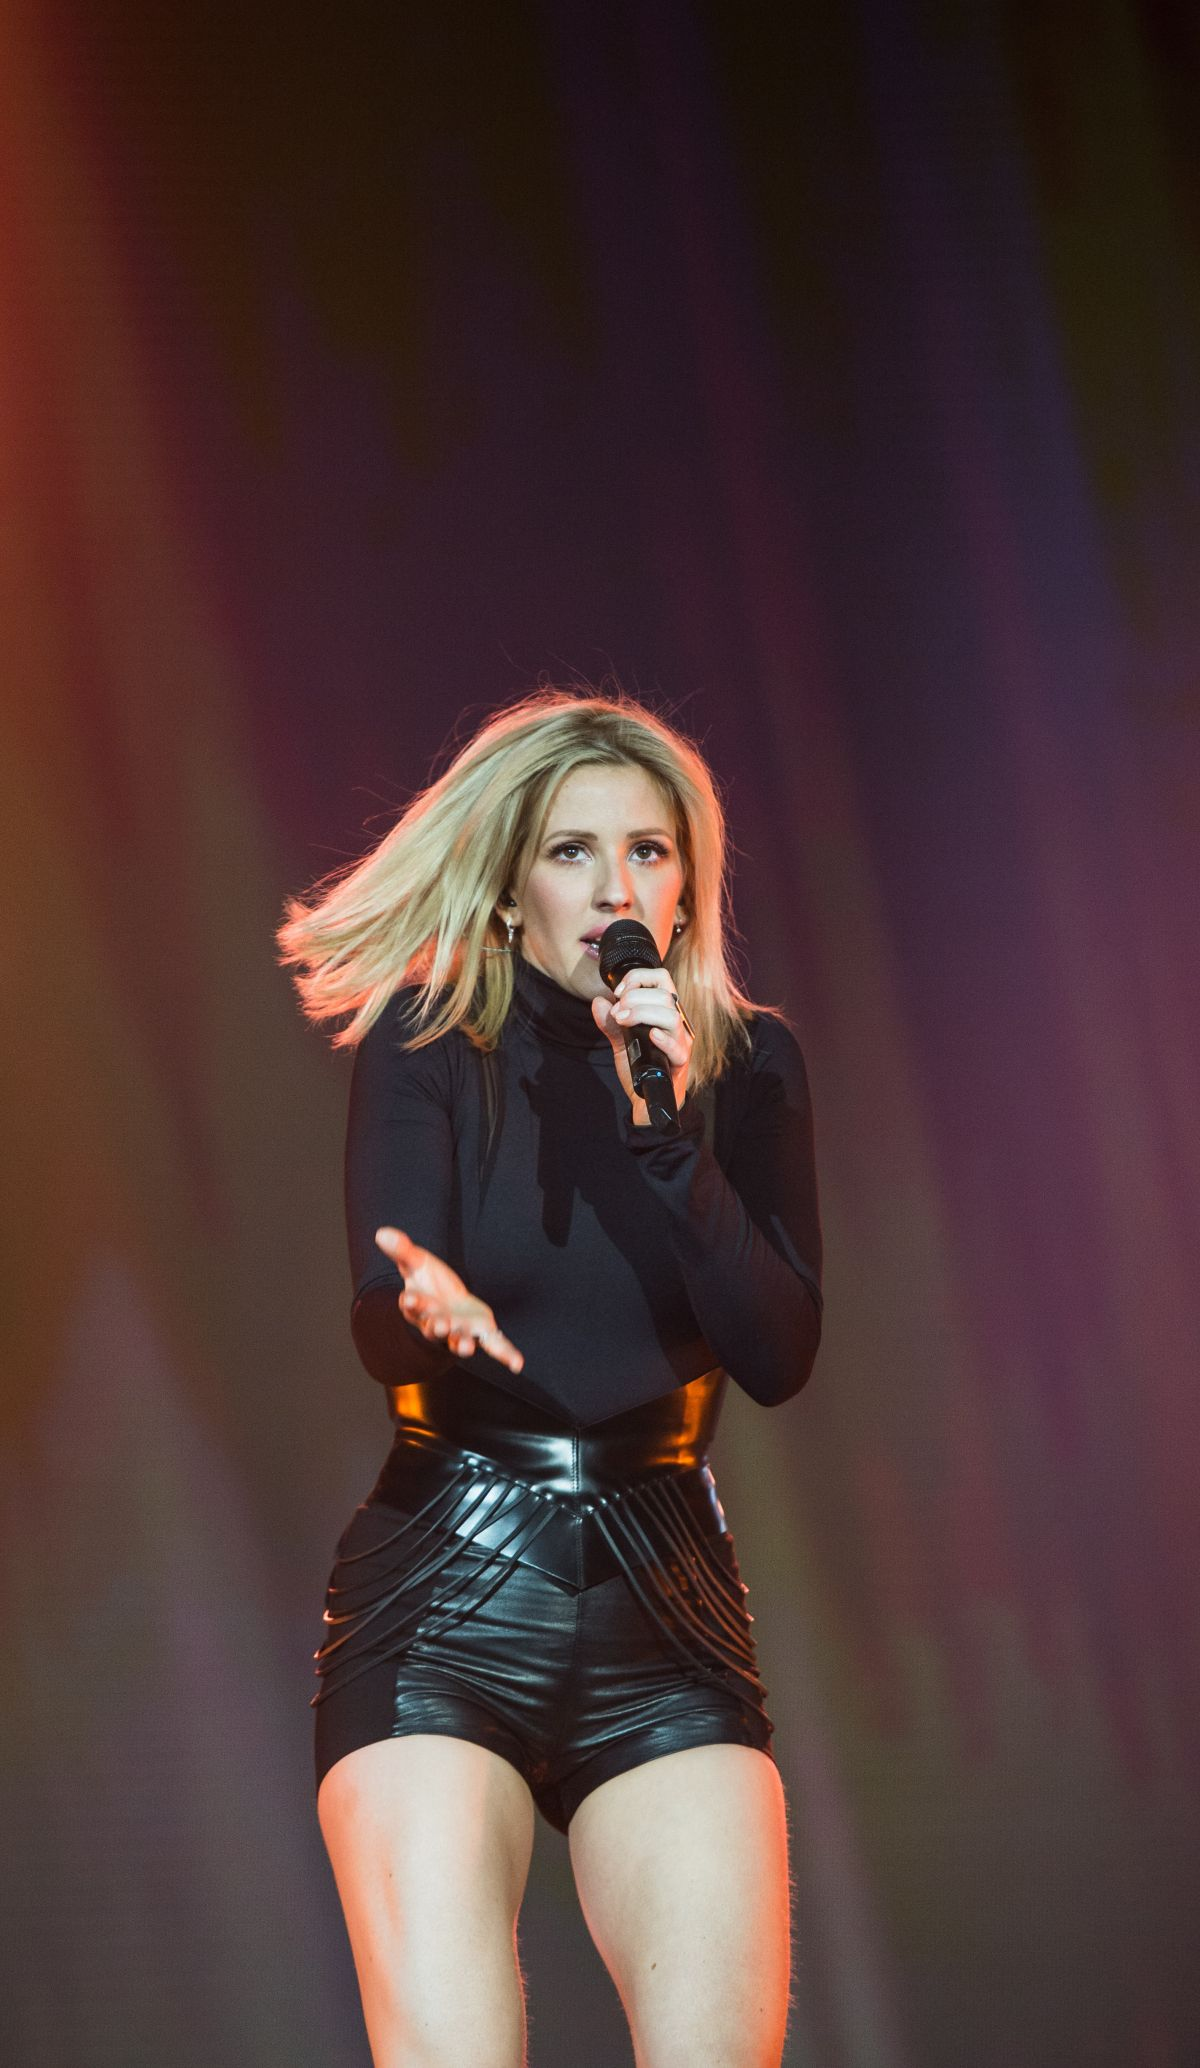 ELLIE GOULDING Pergorms at Delirium World Tour in Hamburg 01/21/2016